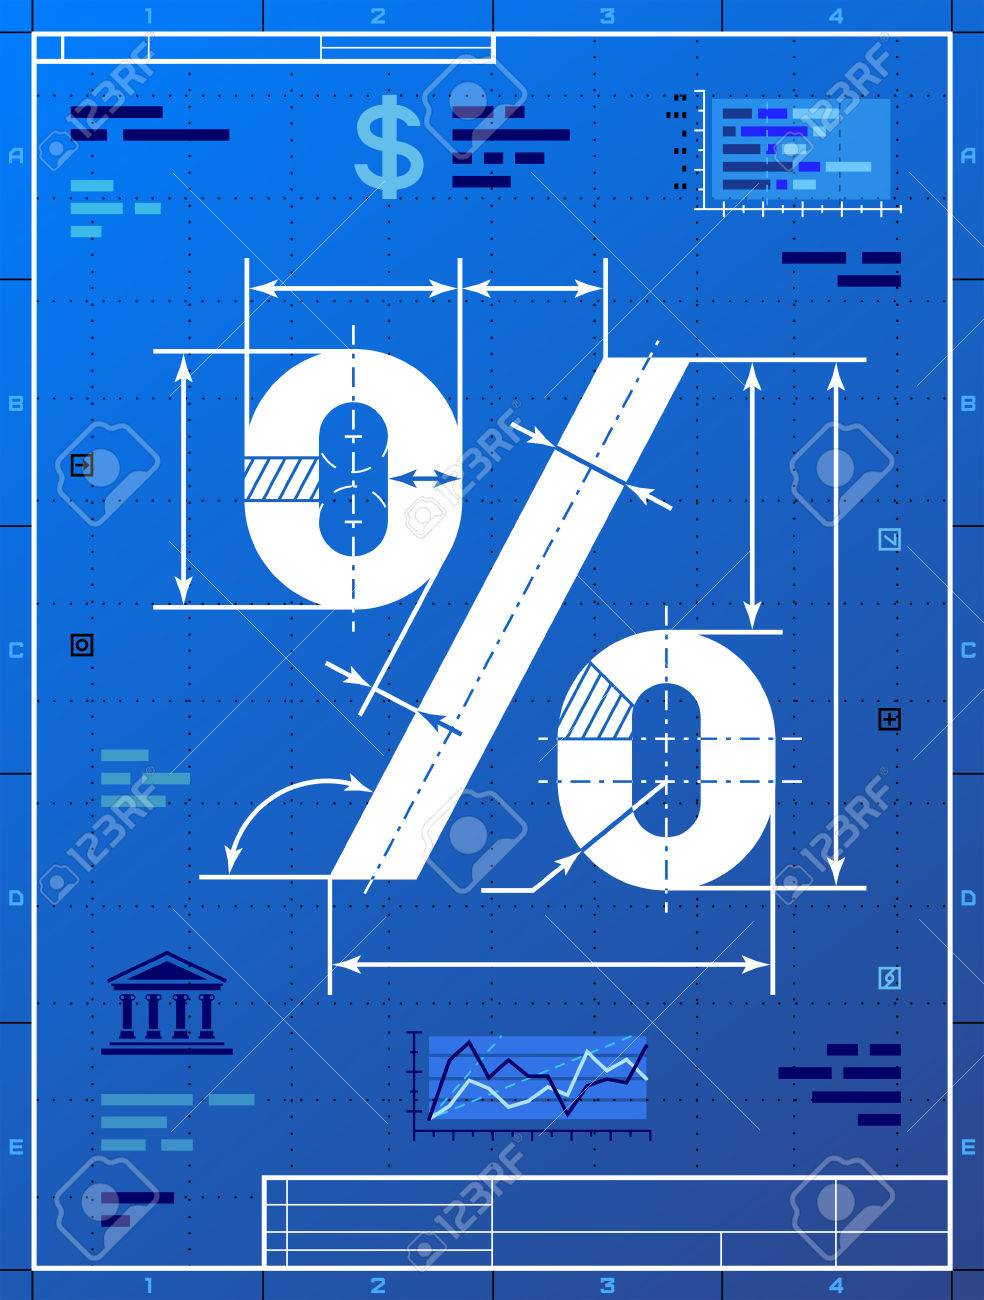 Percent sign like blueprint drawing stylized drafting of percentage percent sign like blueprint drawing stylized drafting of percentage symbol on blueprint paper qualitative vector eps malvernweather Images